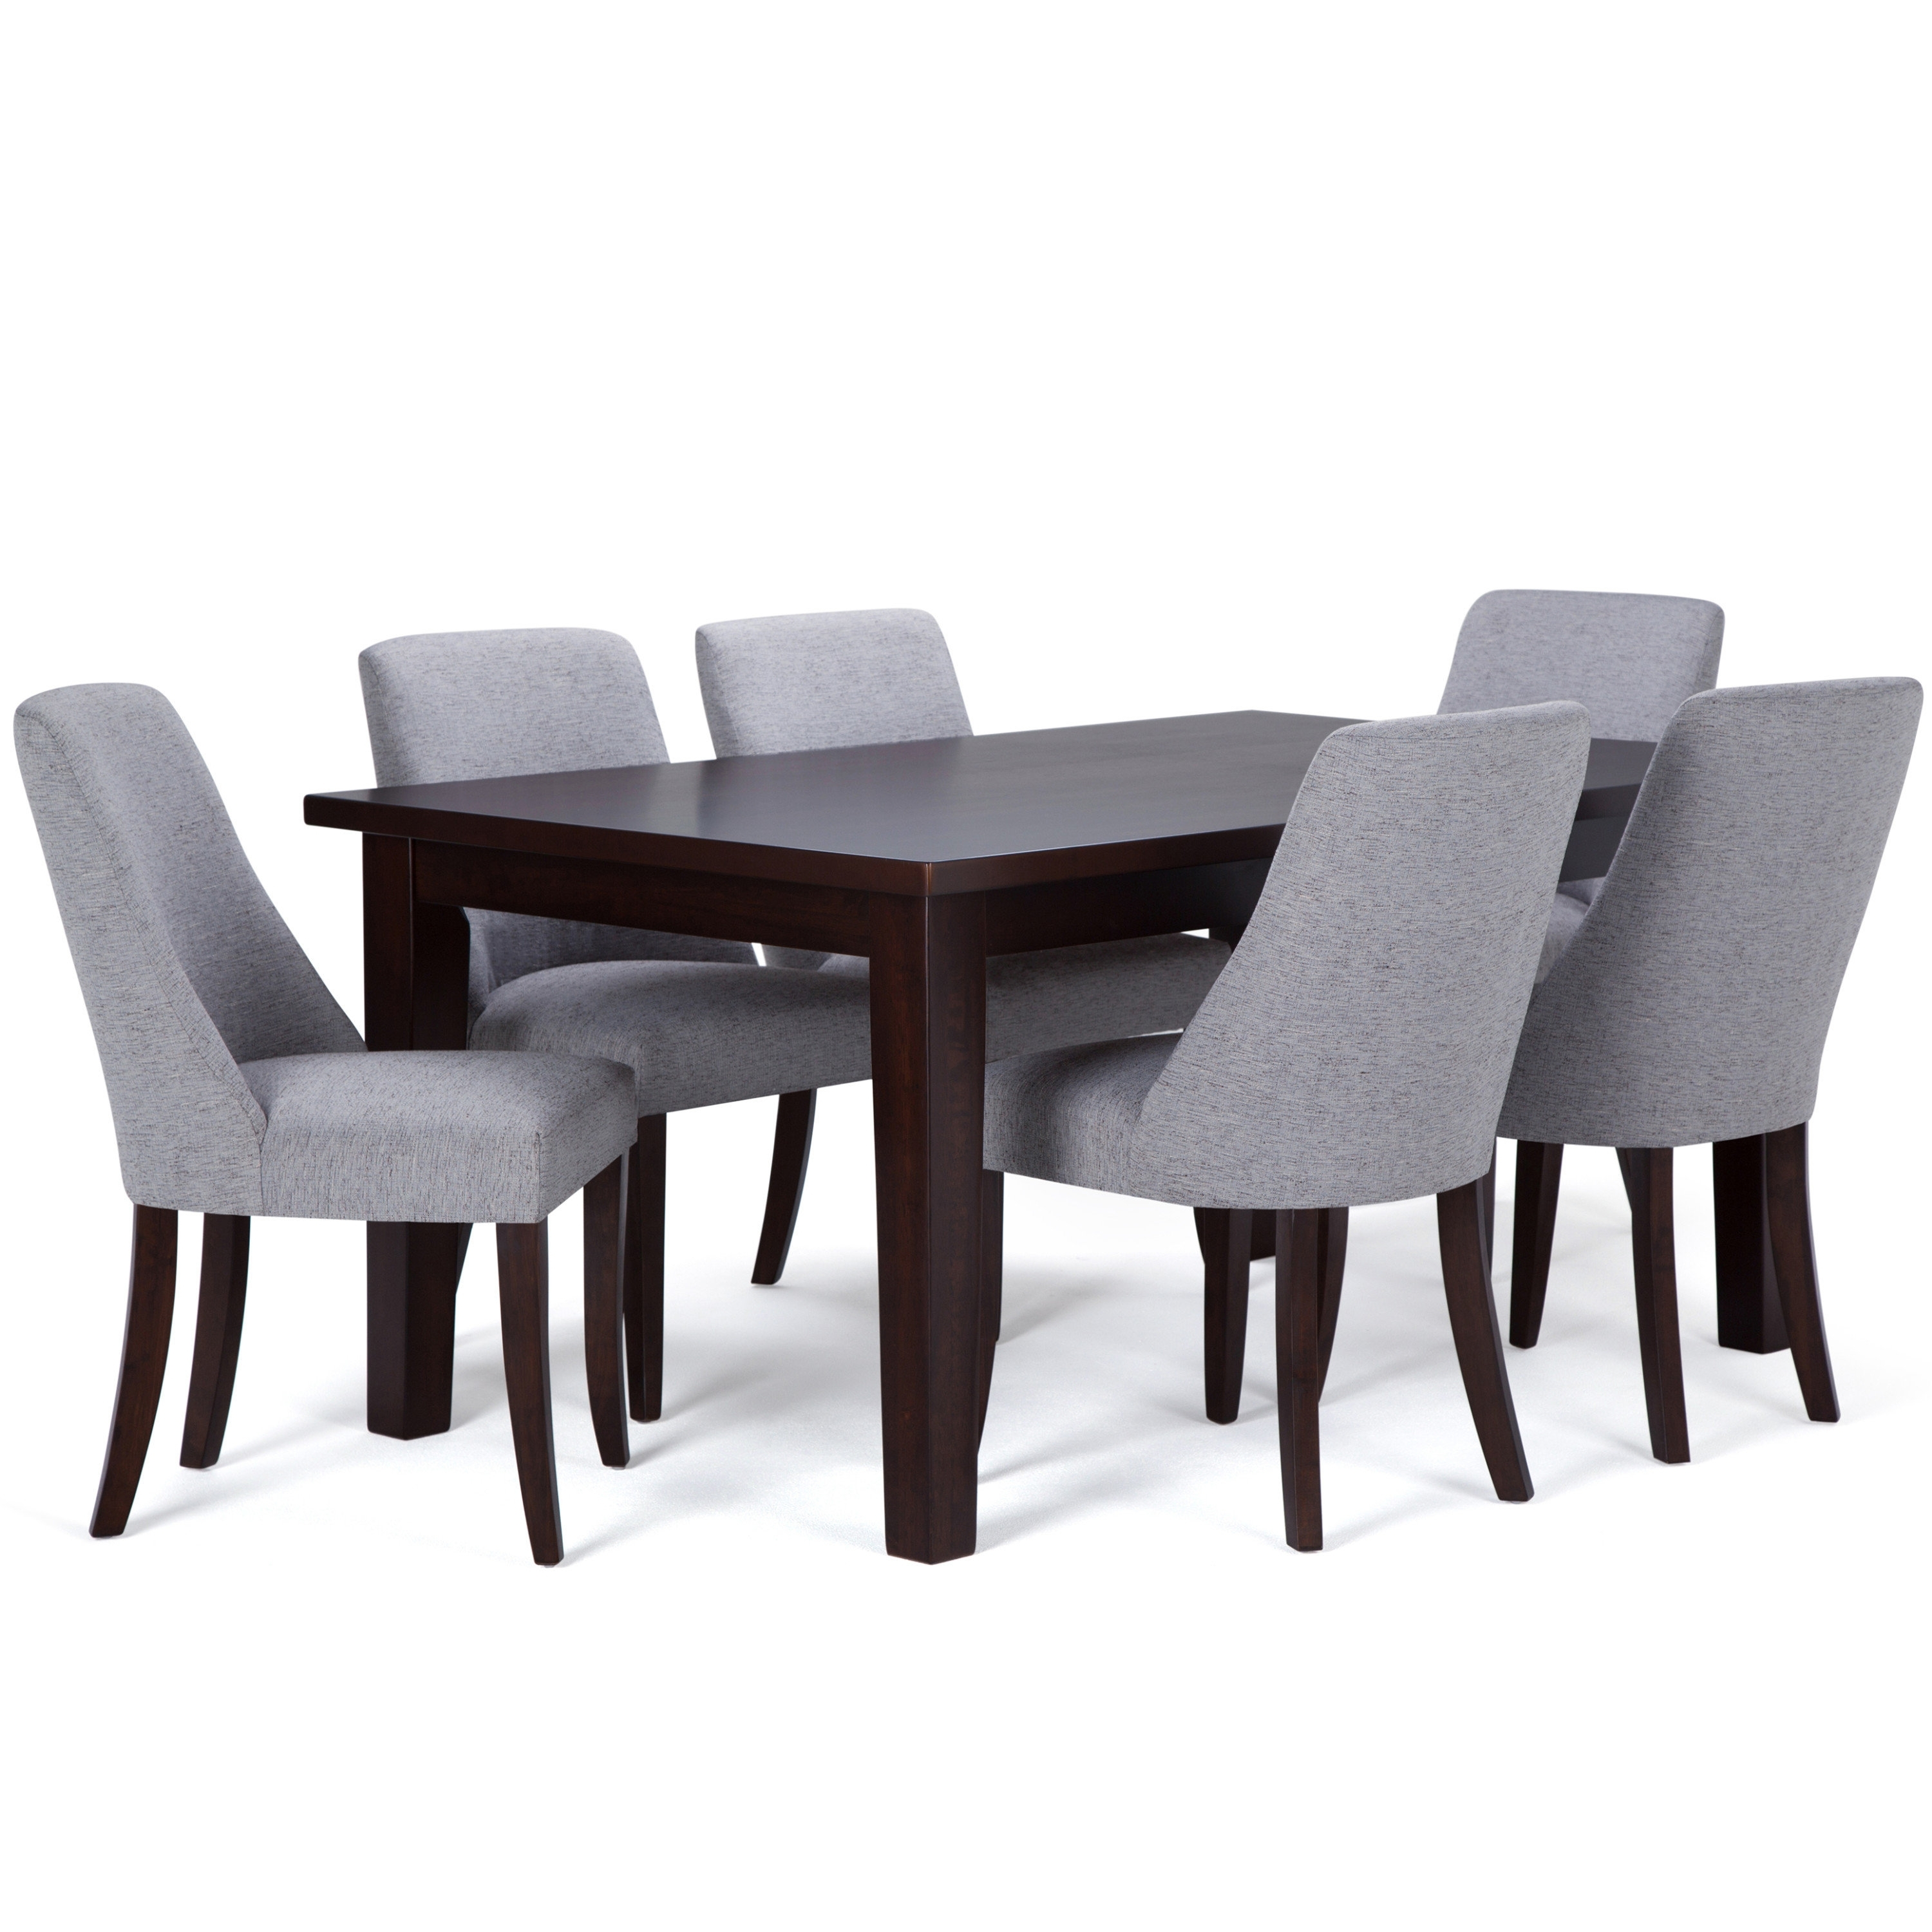 Simpli Home Walden 7 Piece Dining Set | Wayfair For Recent Walden 7 Piece Extension Dining Sets (Image 14 of 20)